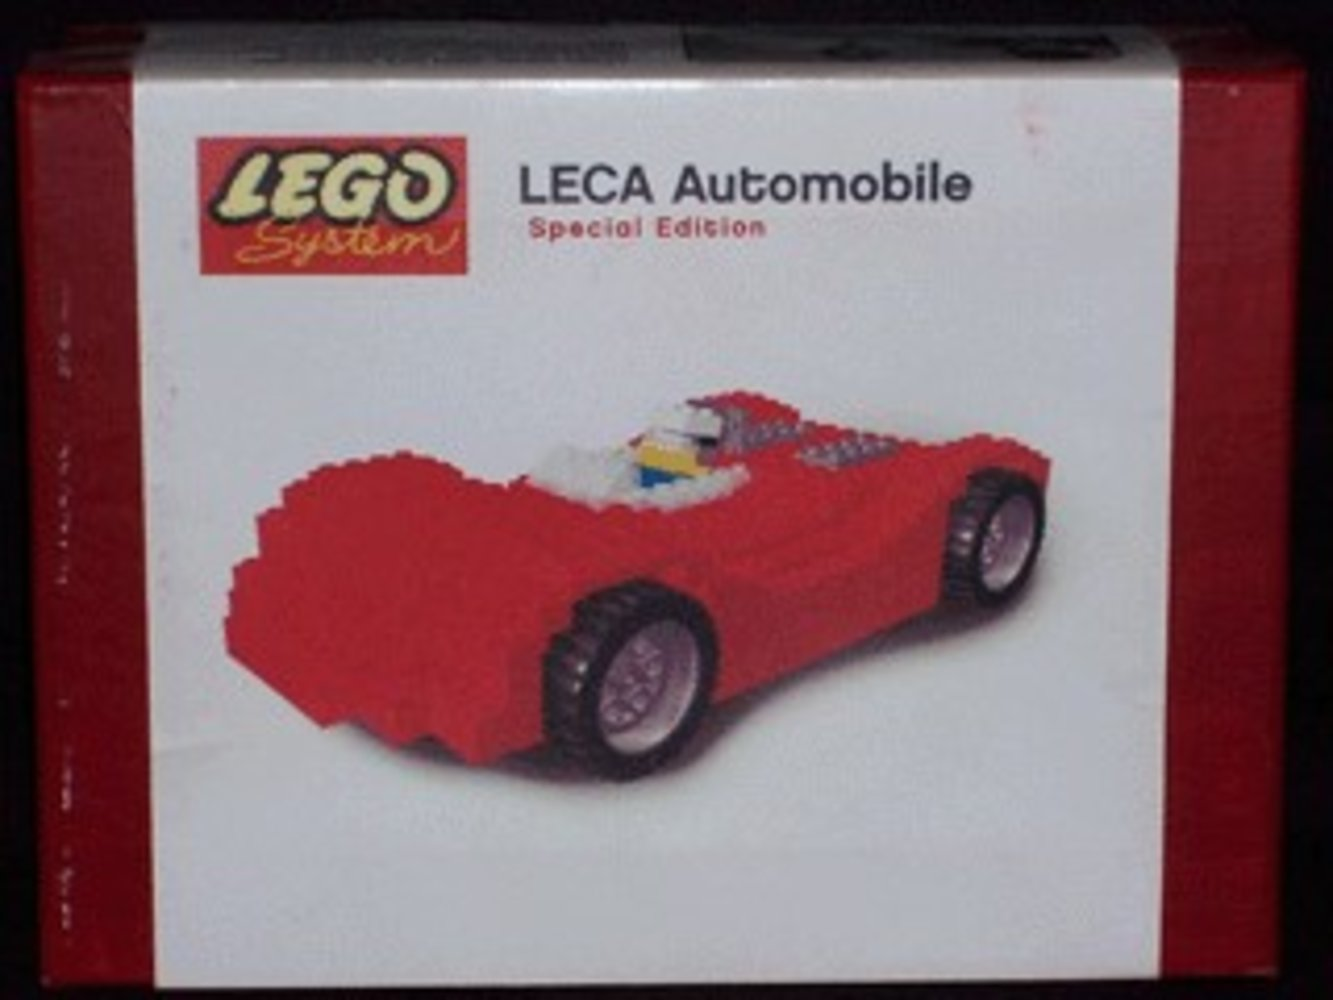 LECA Automobile